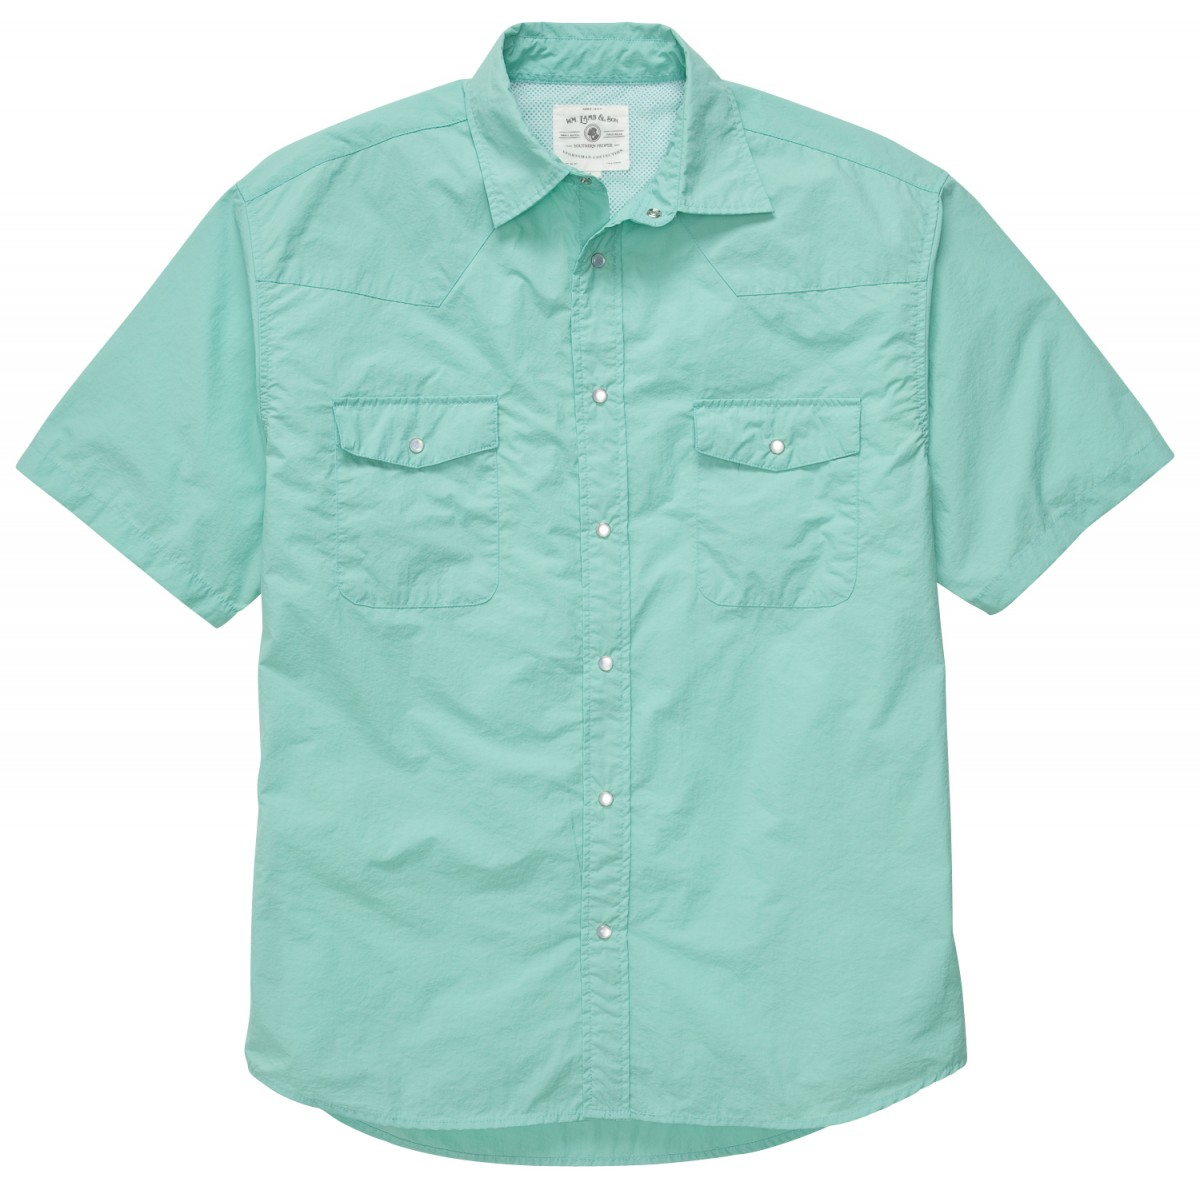 WLS Short Sleeve Fishing Shirt: Aqua